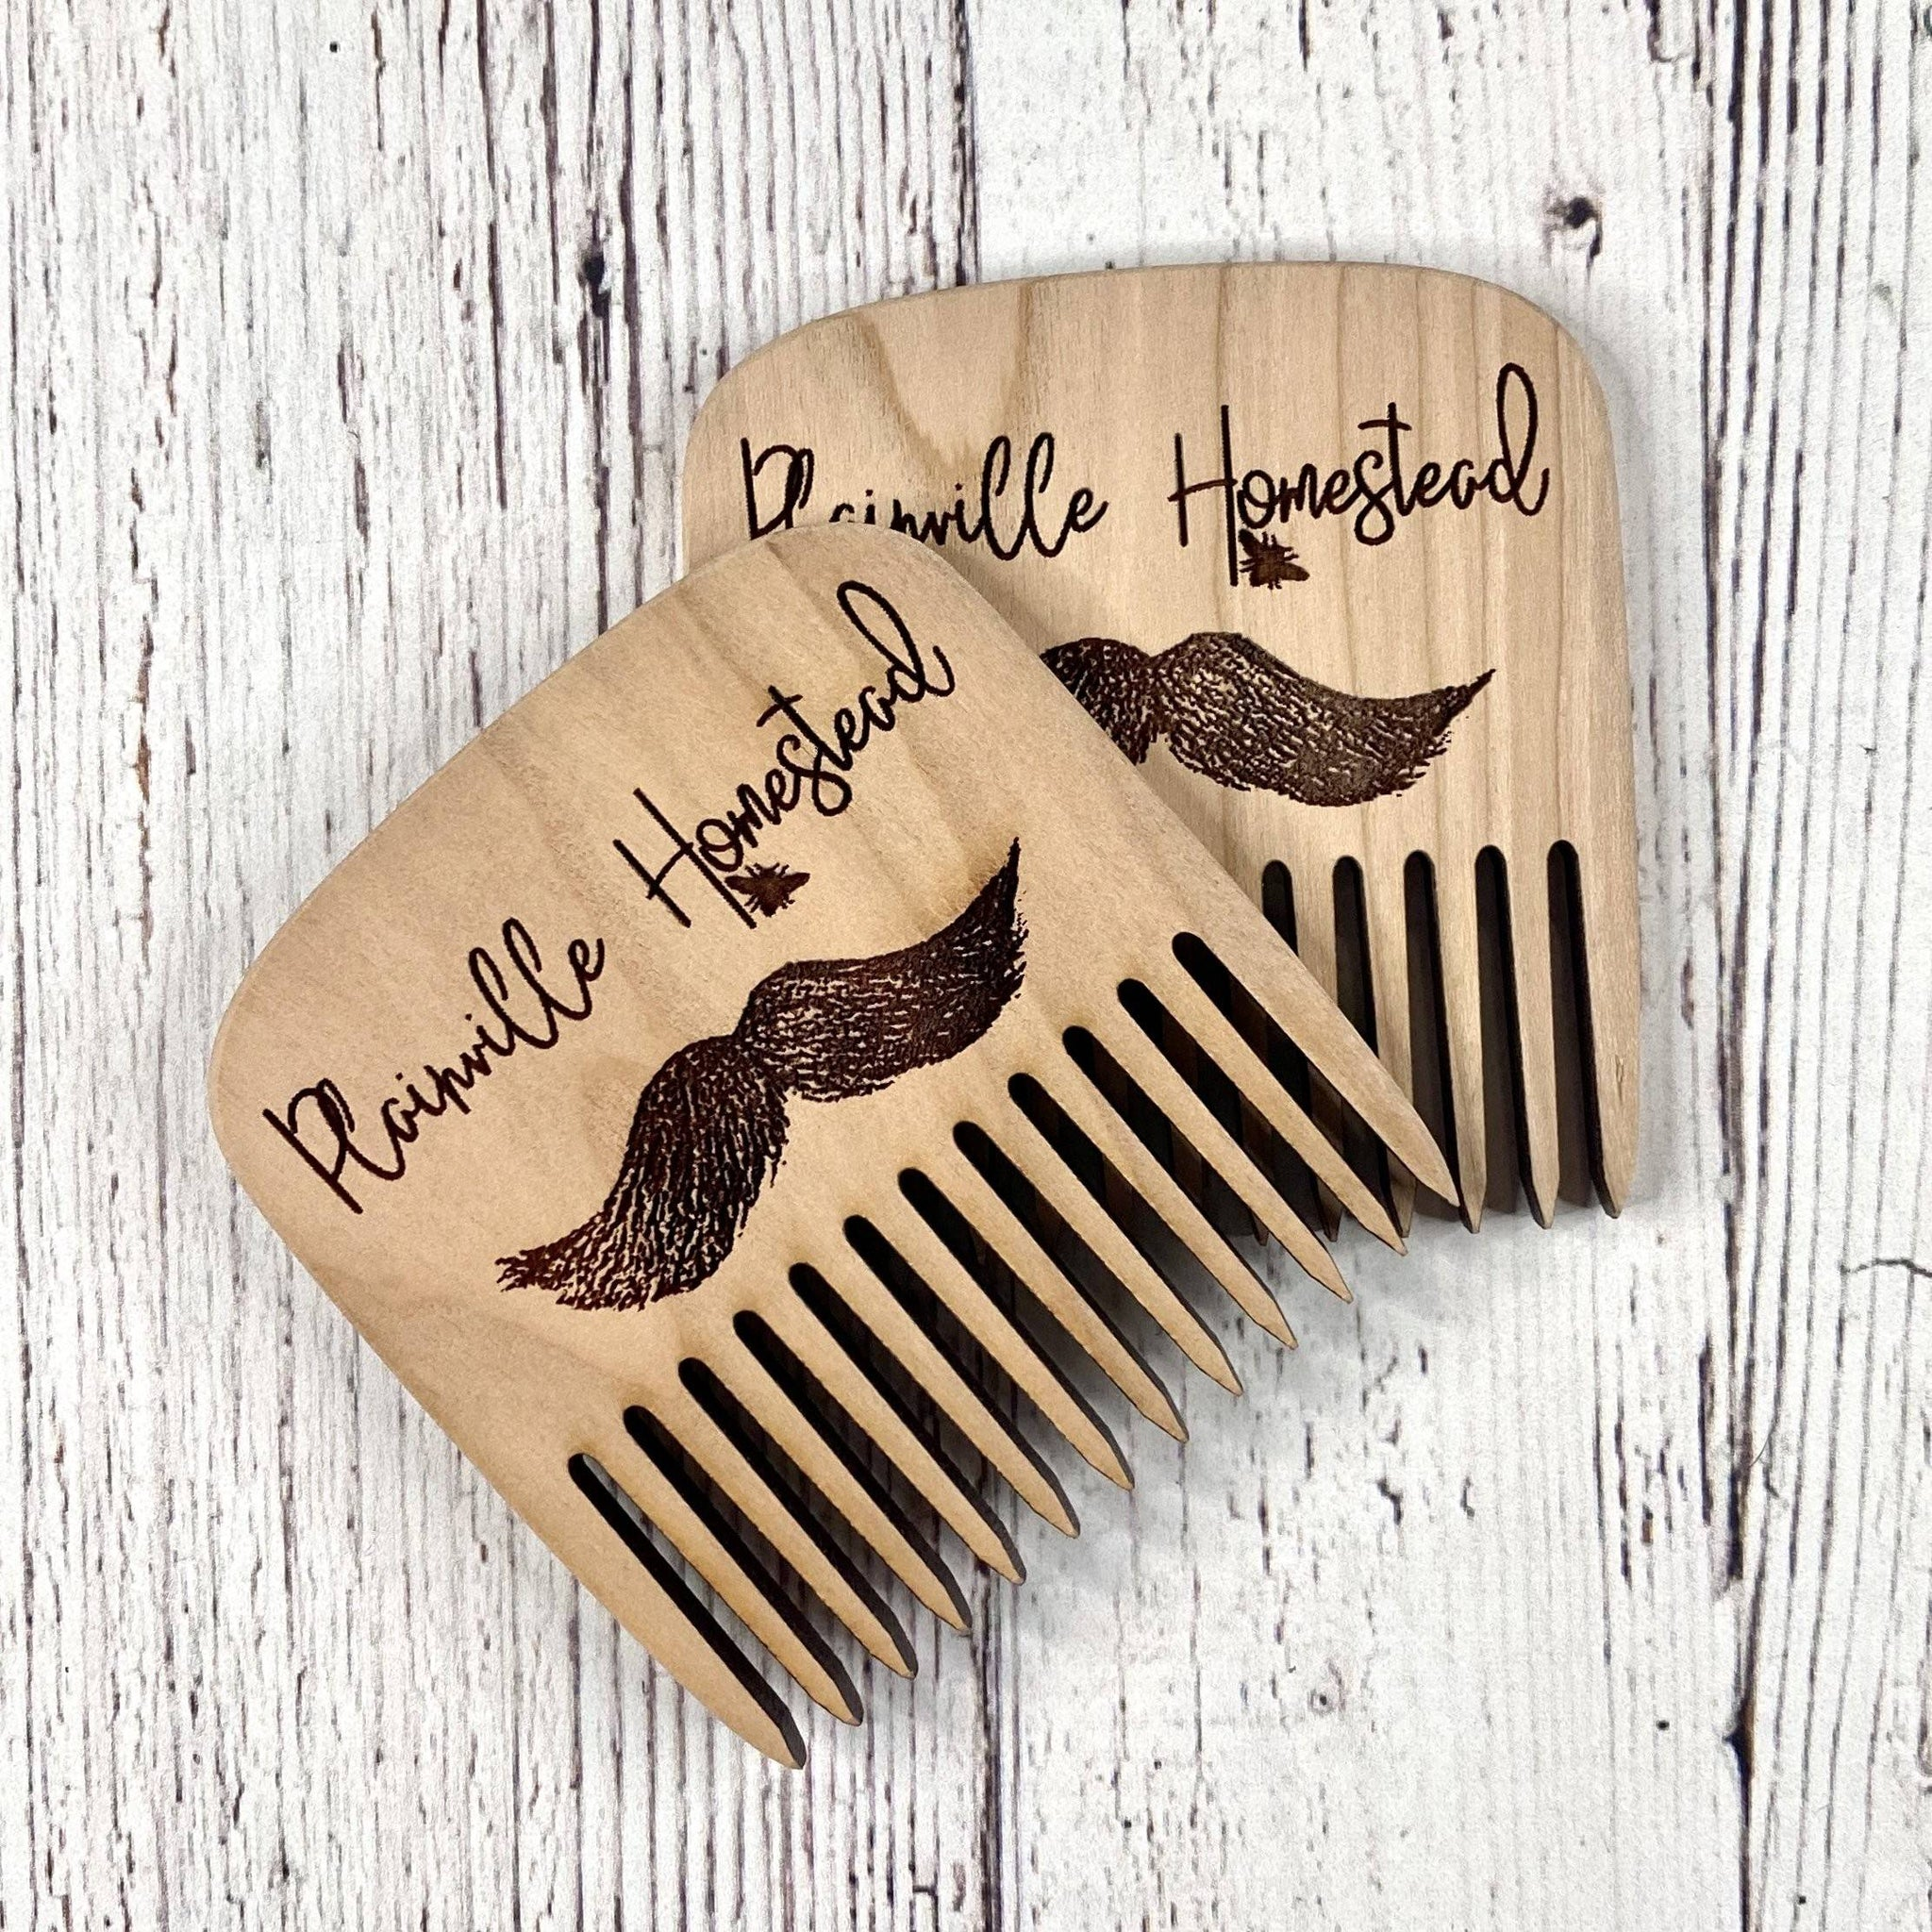 Cherry Wood Beard Comb | Laser Cut